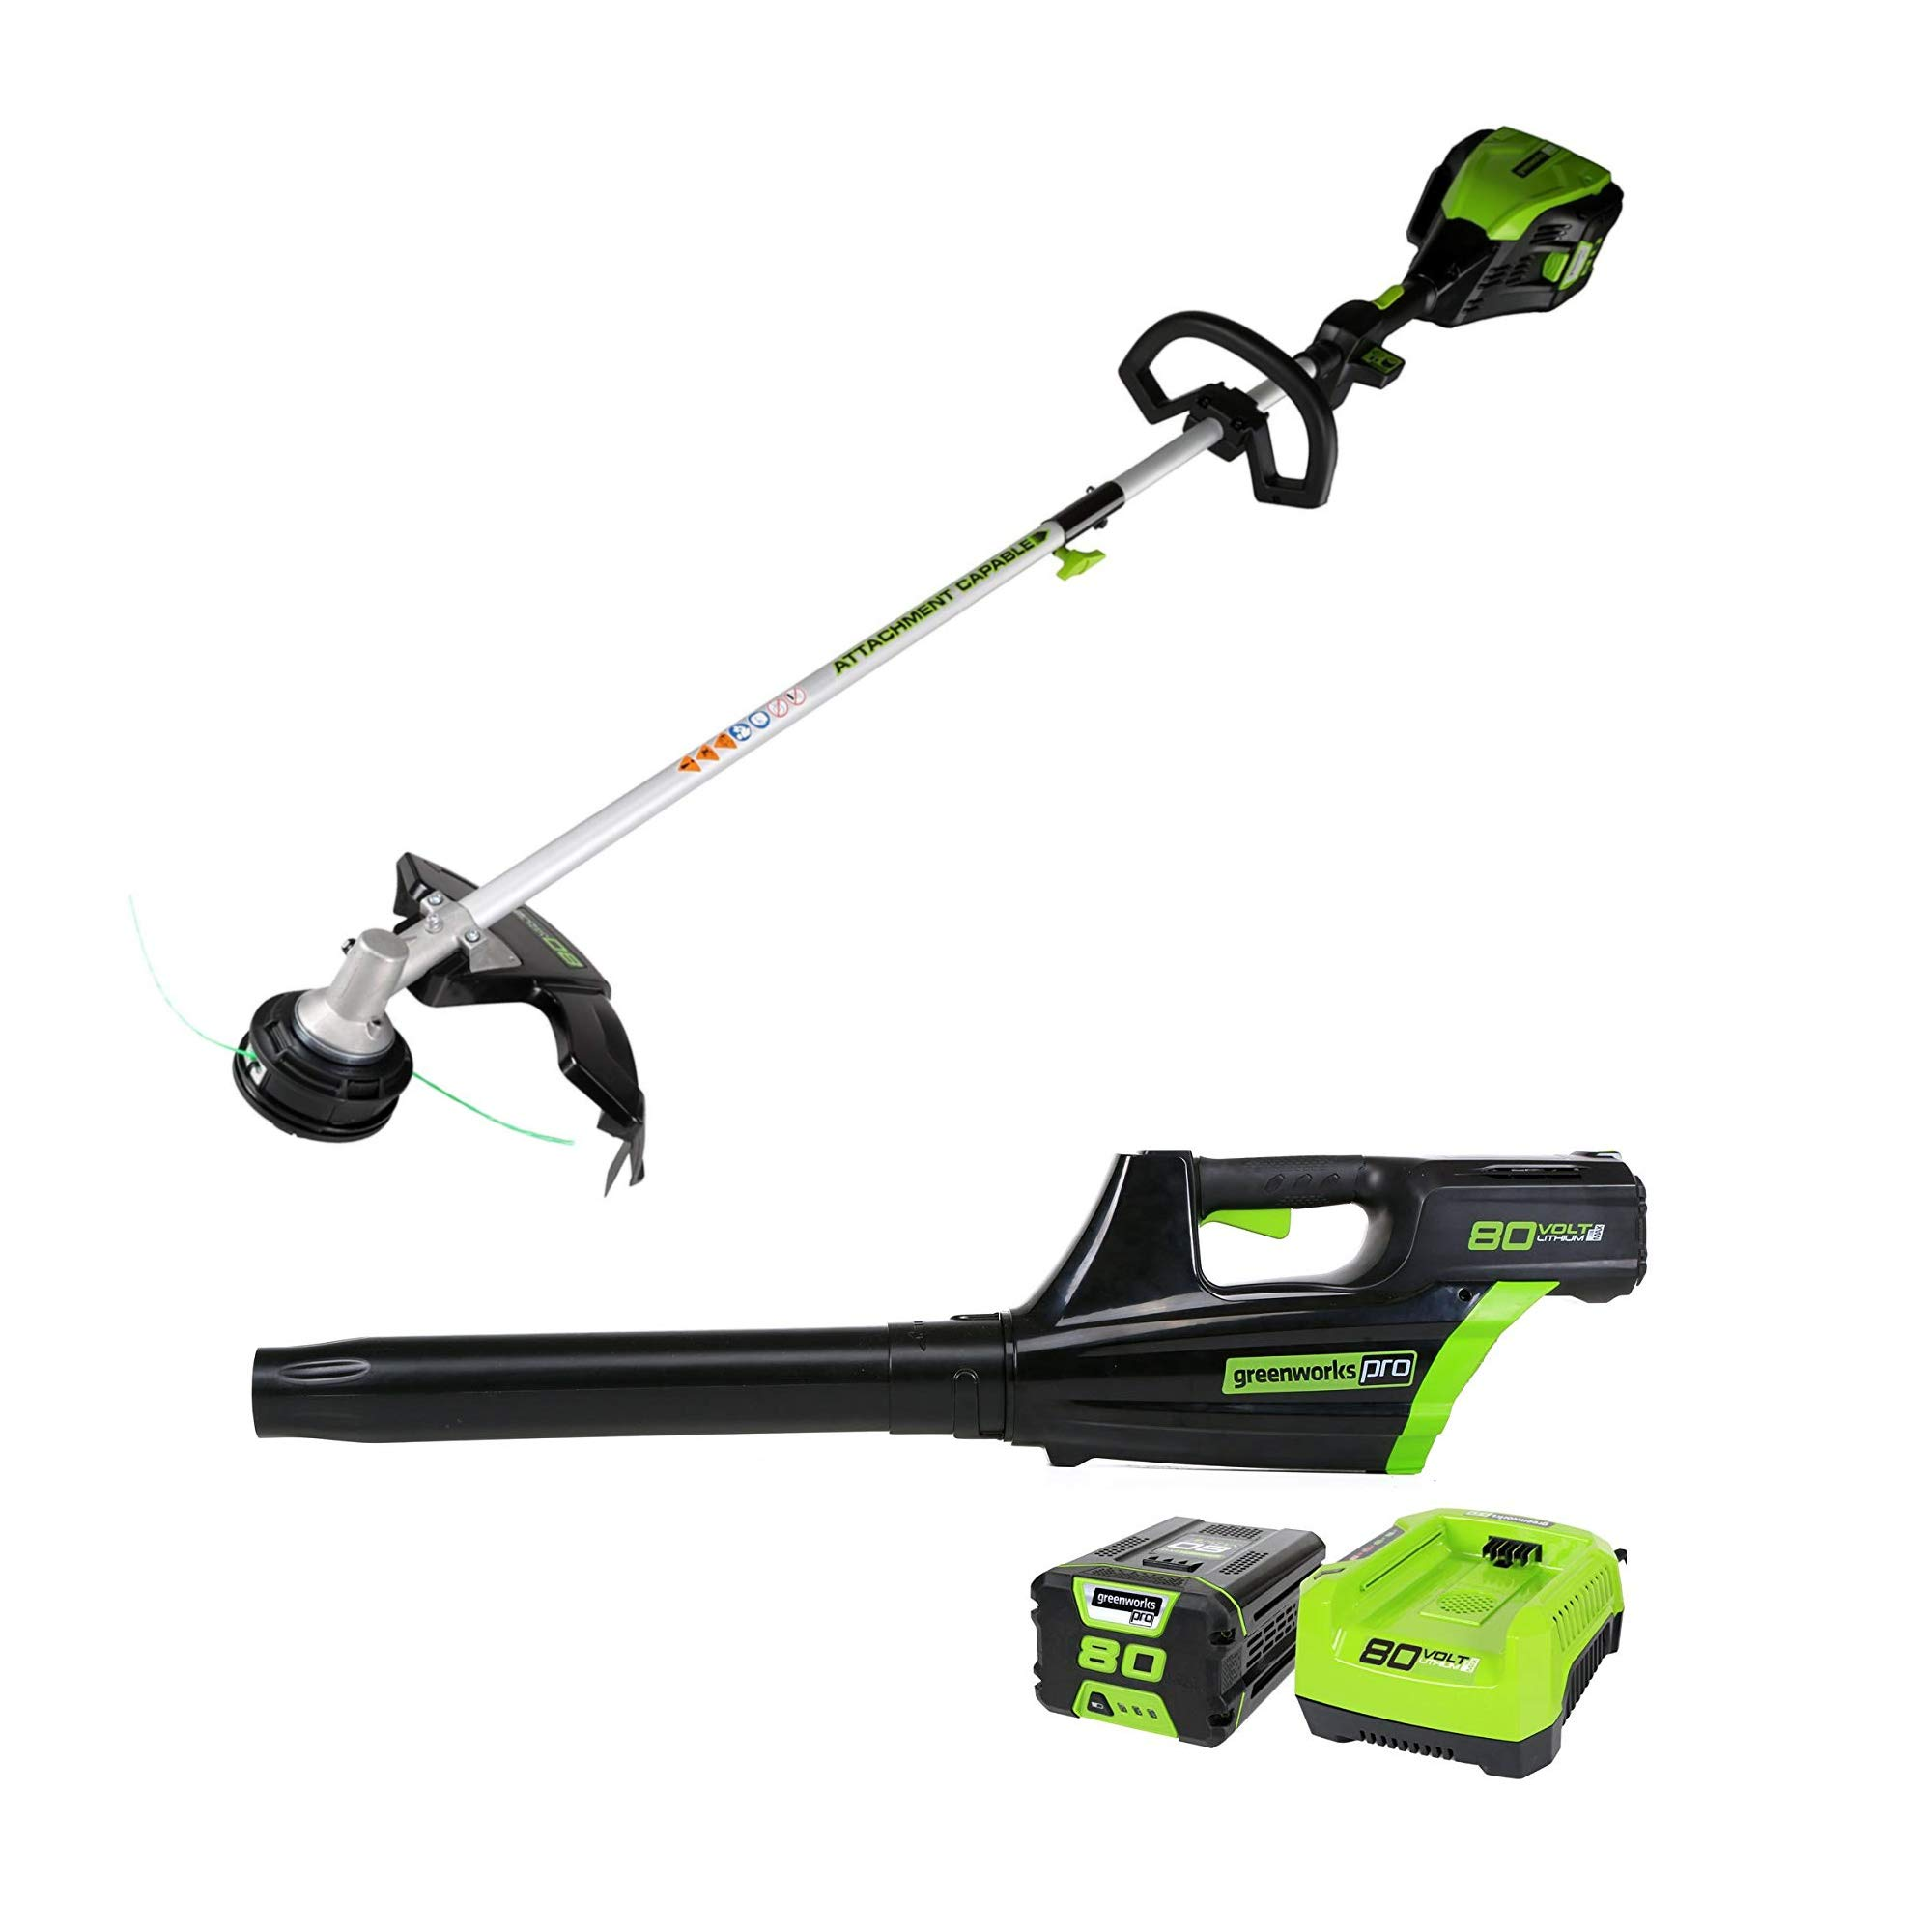 Greenworks Pro 80V Cordless Brushless 16'' String Trimmer + Axial Blower Combo Kit, Battery and Rapid Charger Included